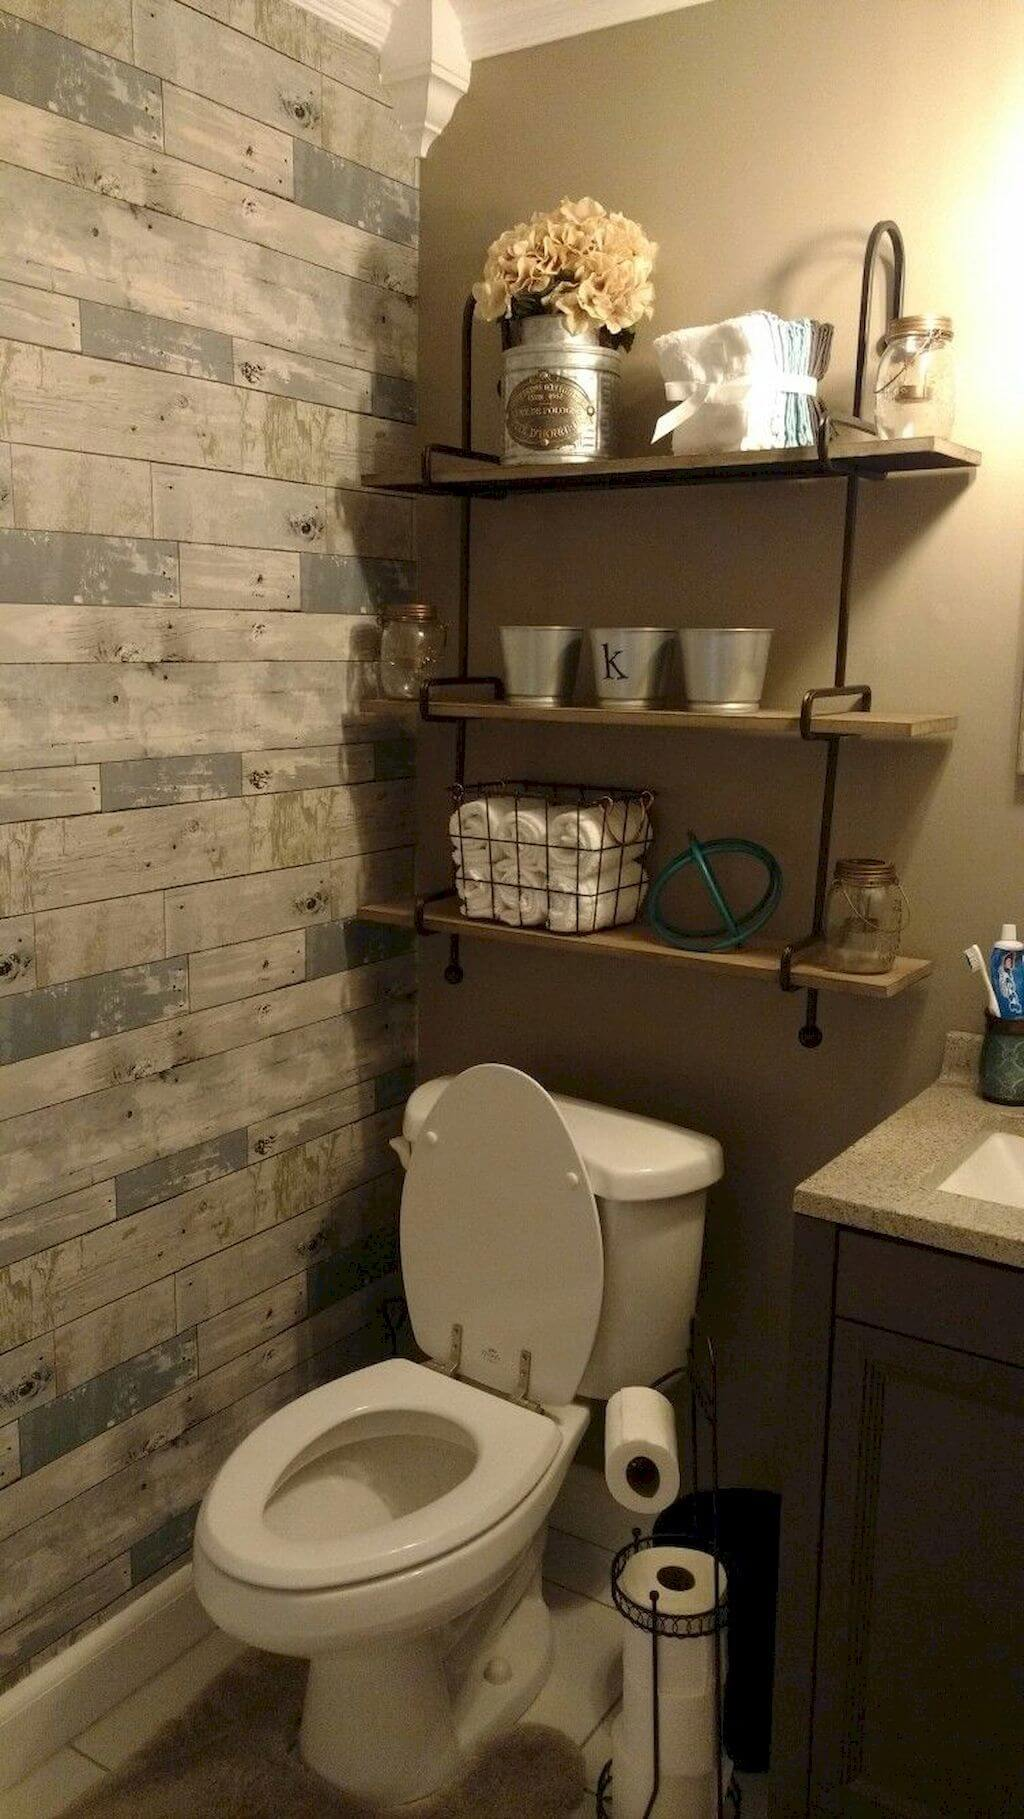 25 Cozy Rustic Bathroom Decor To Guide Your Renovation - W7